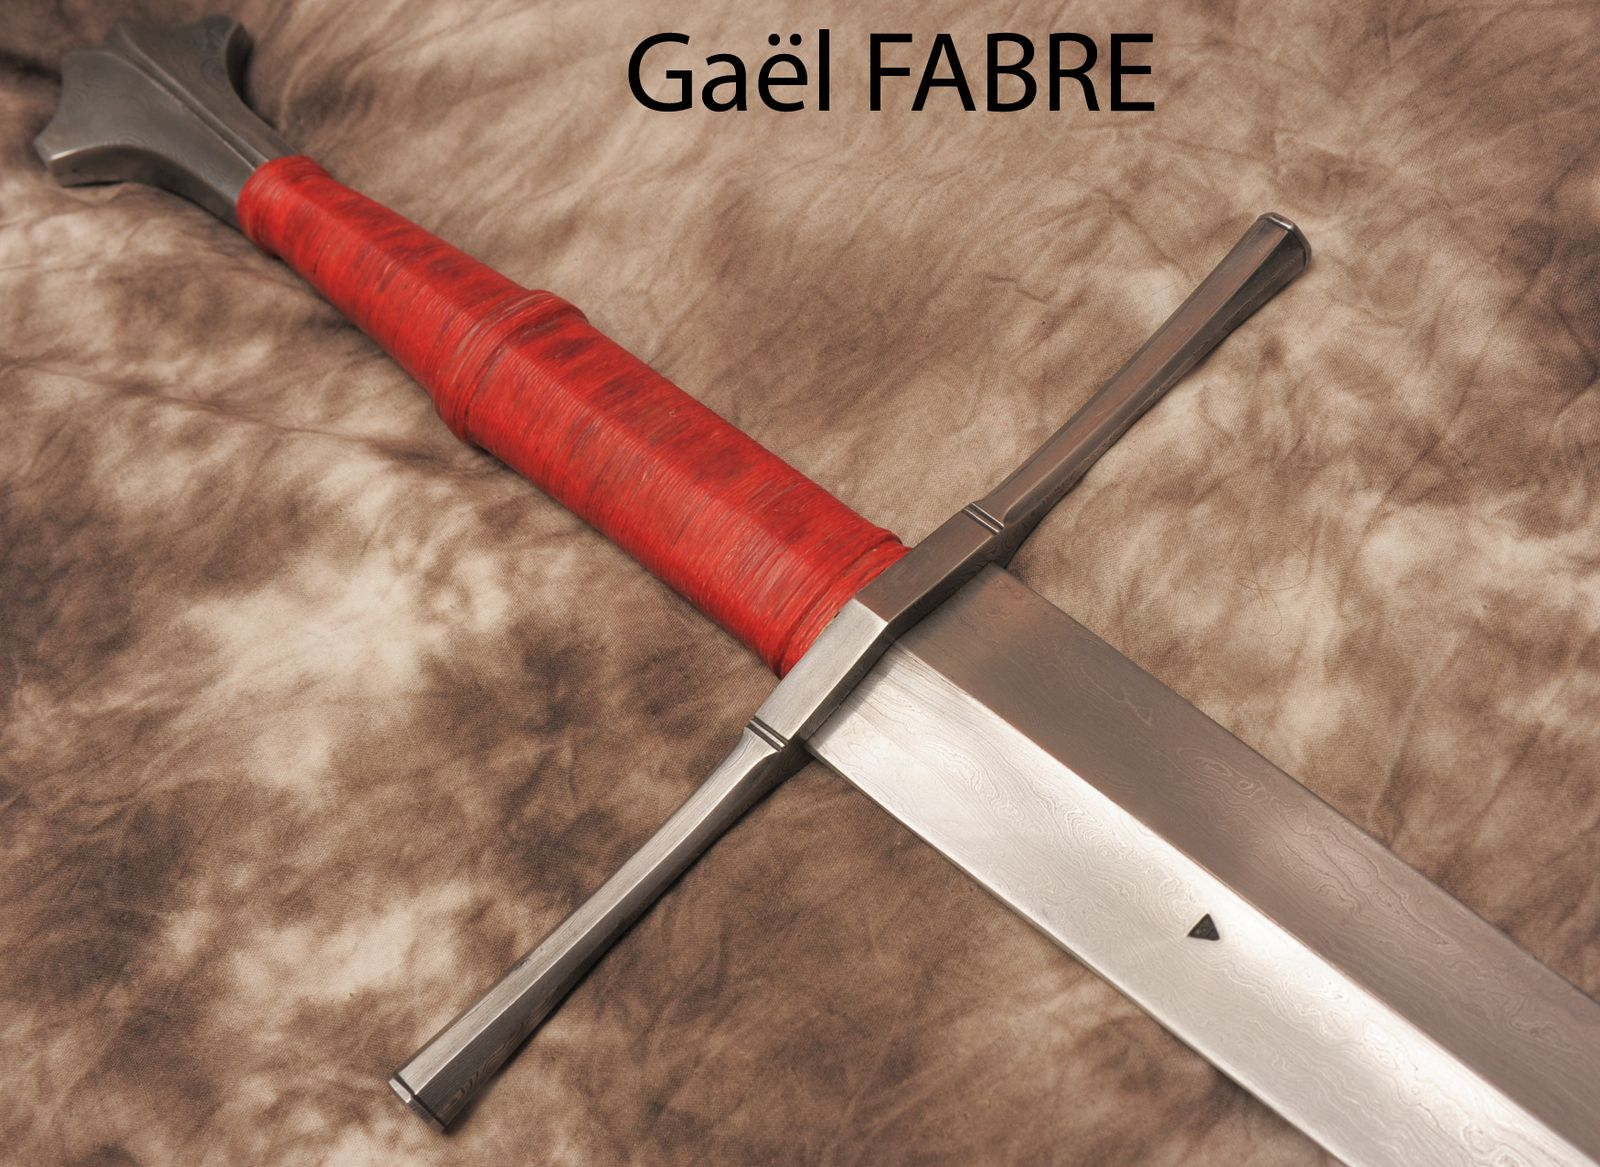 epee-damas-gael-fabre-forgee-medievale-46